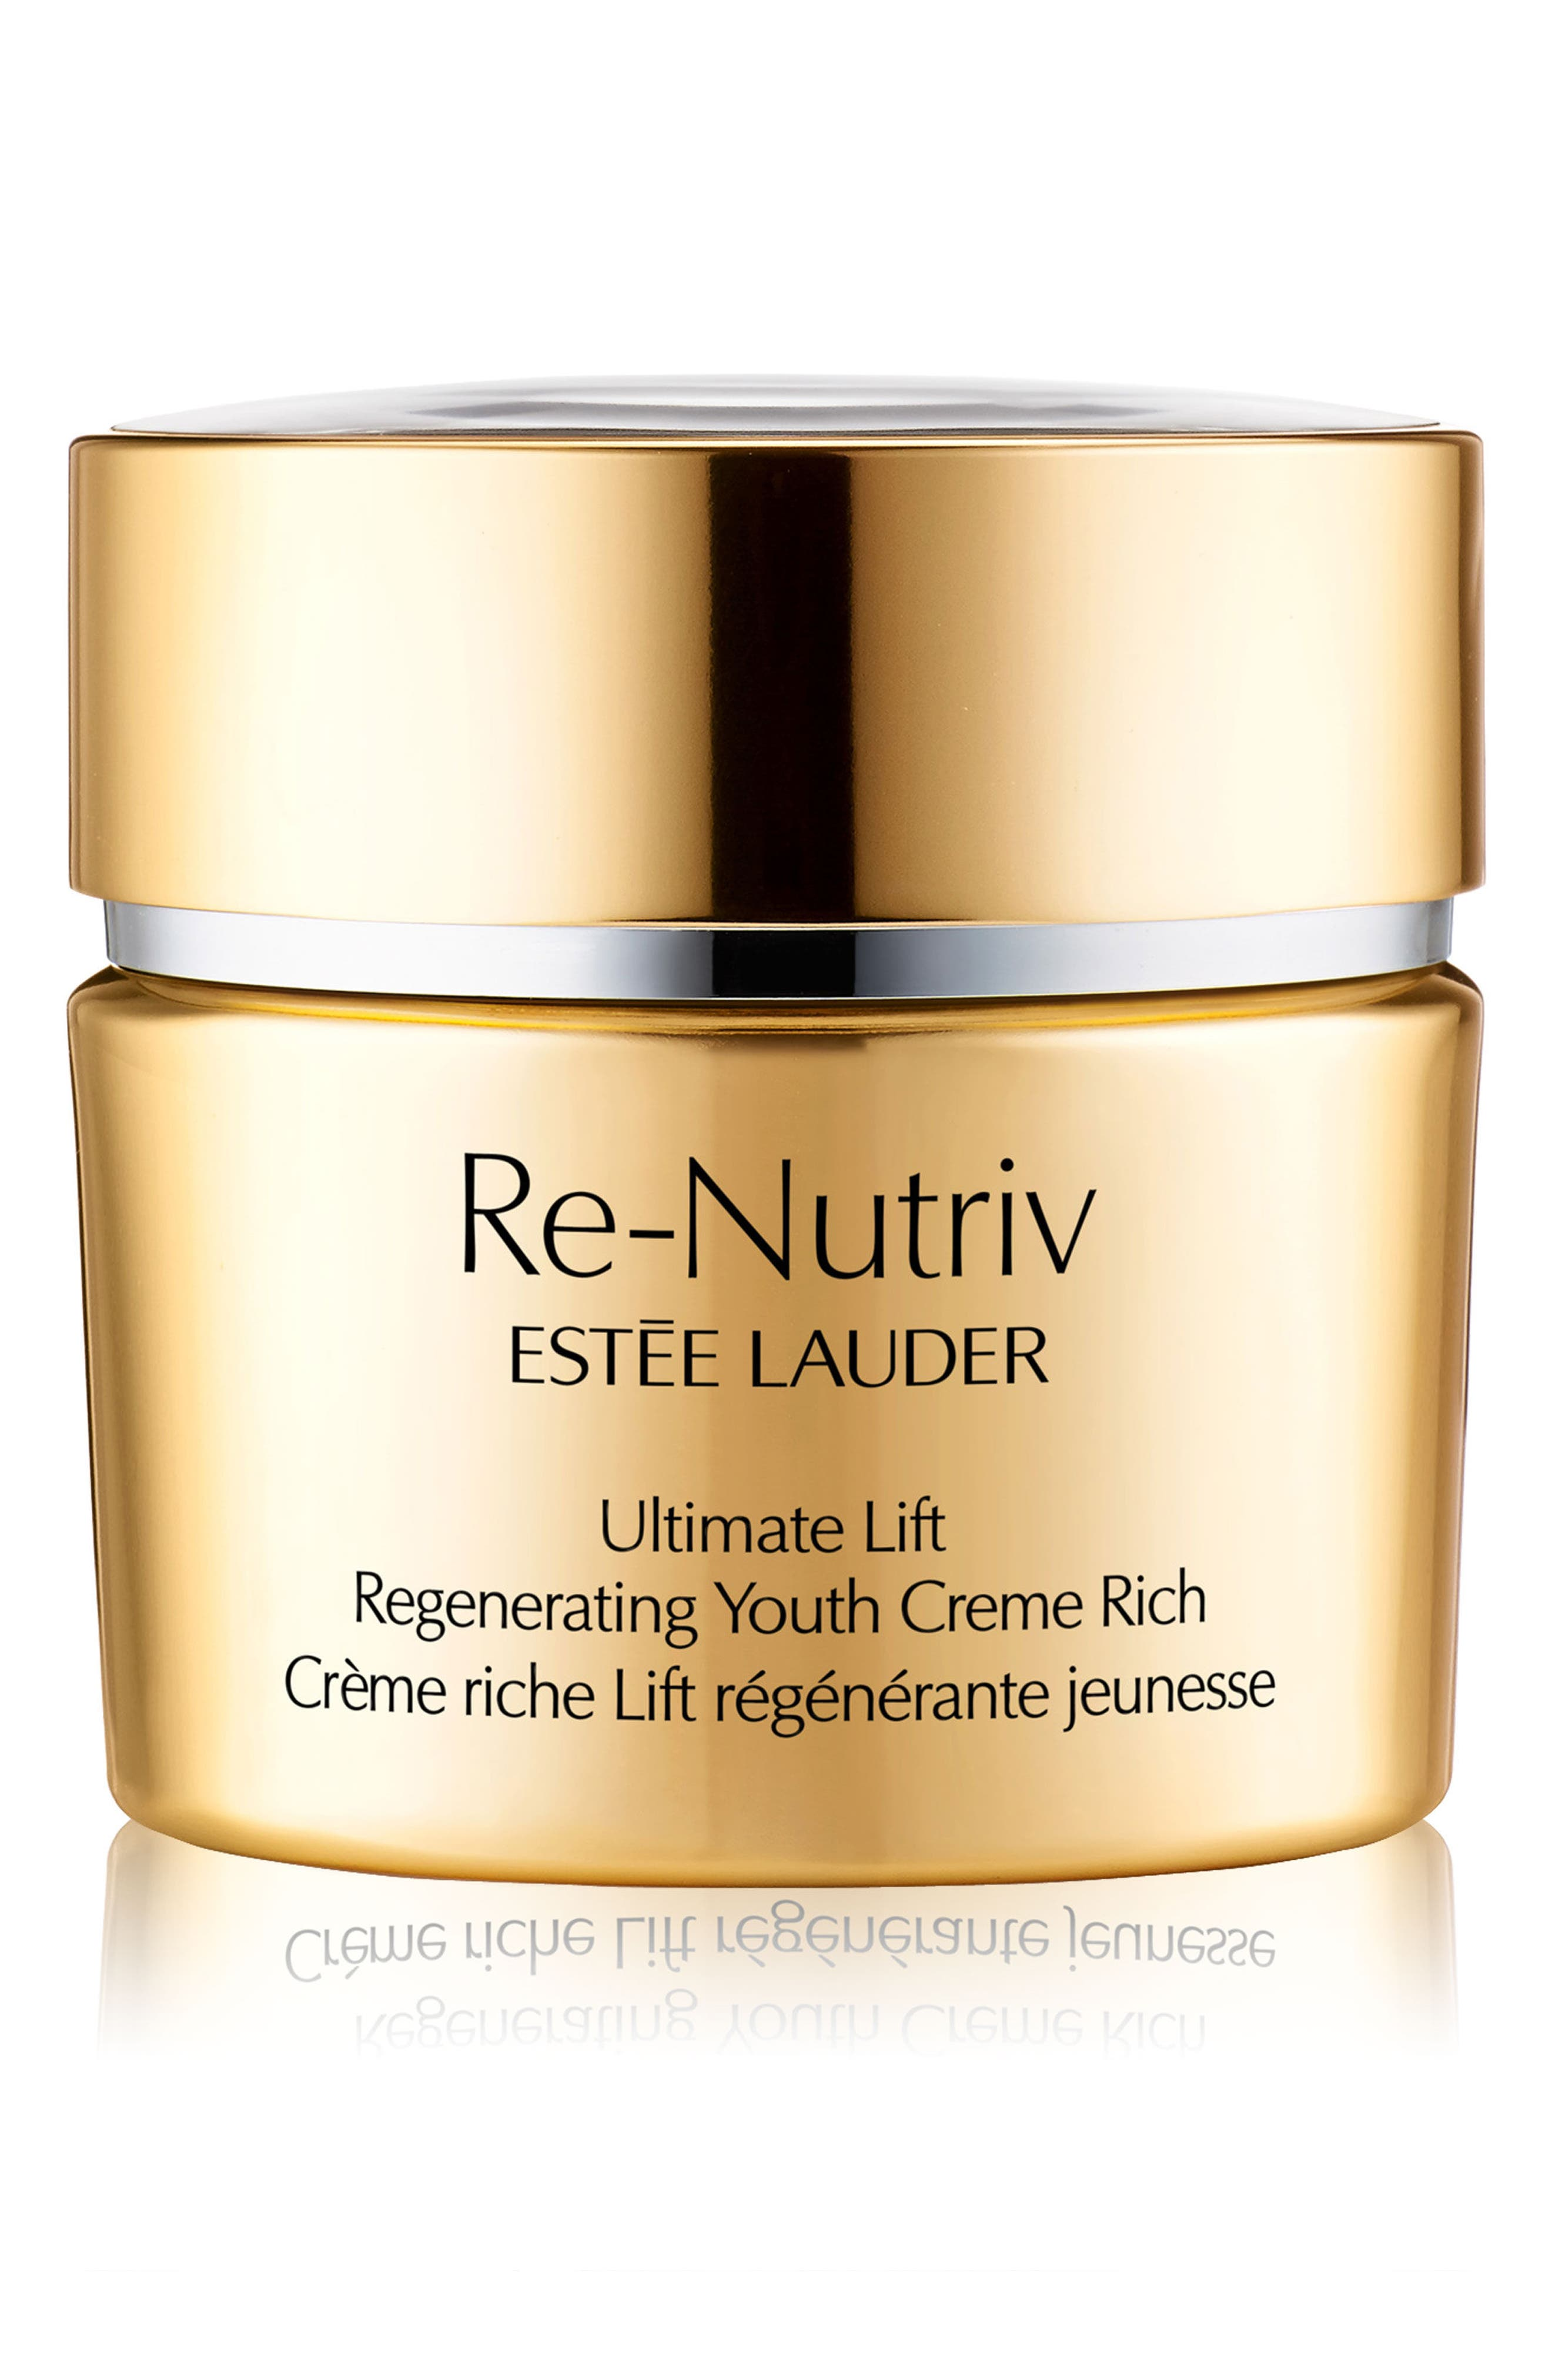 Re-Nutriv Ultimate Lift Regenerating Youth Creme Rich,                             Main thumbnail 1, color,                             000